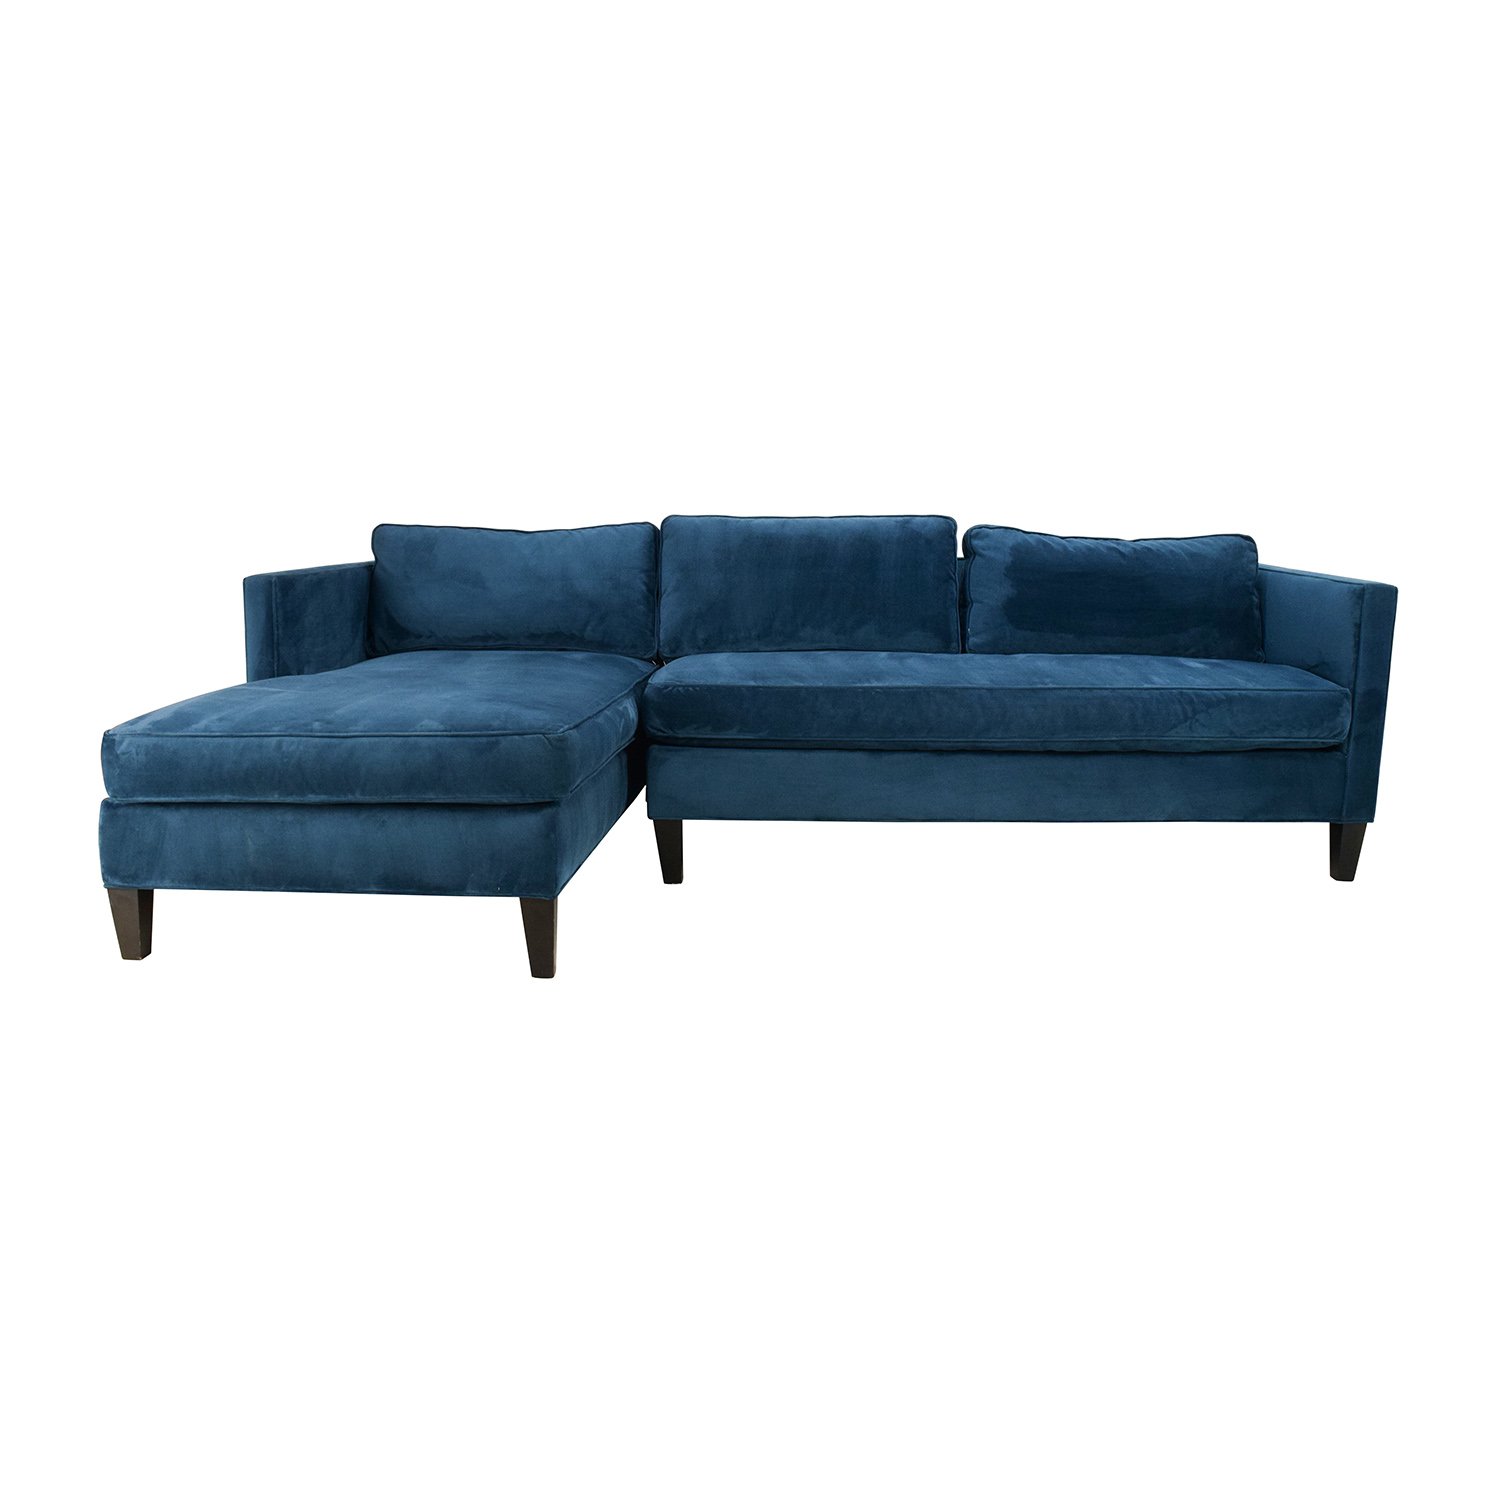 dunham sofa lazar prague 50 off west elm urban grey chaise sectional sofas sale